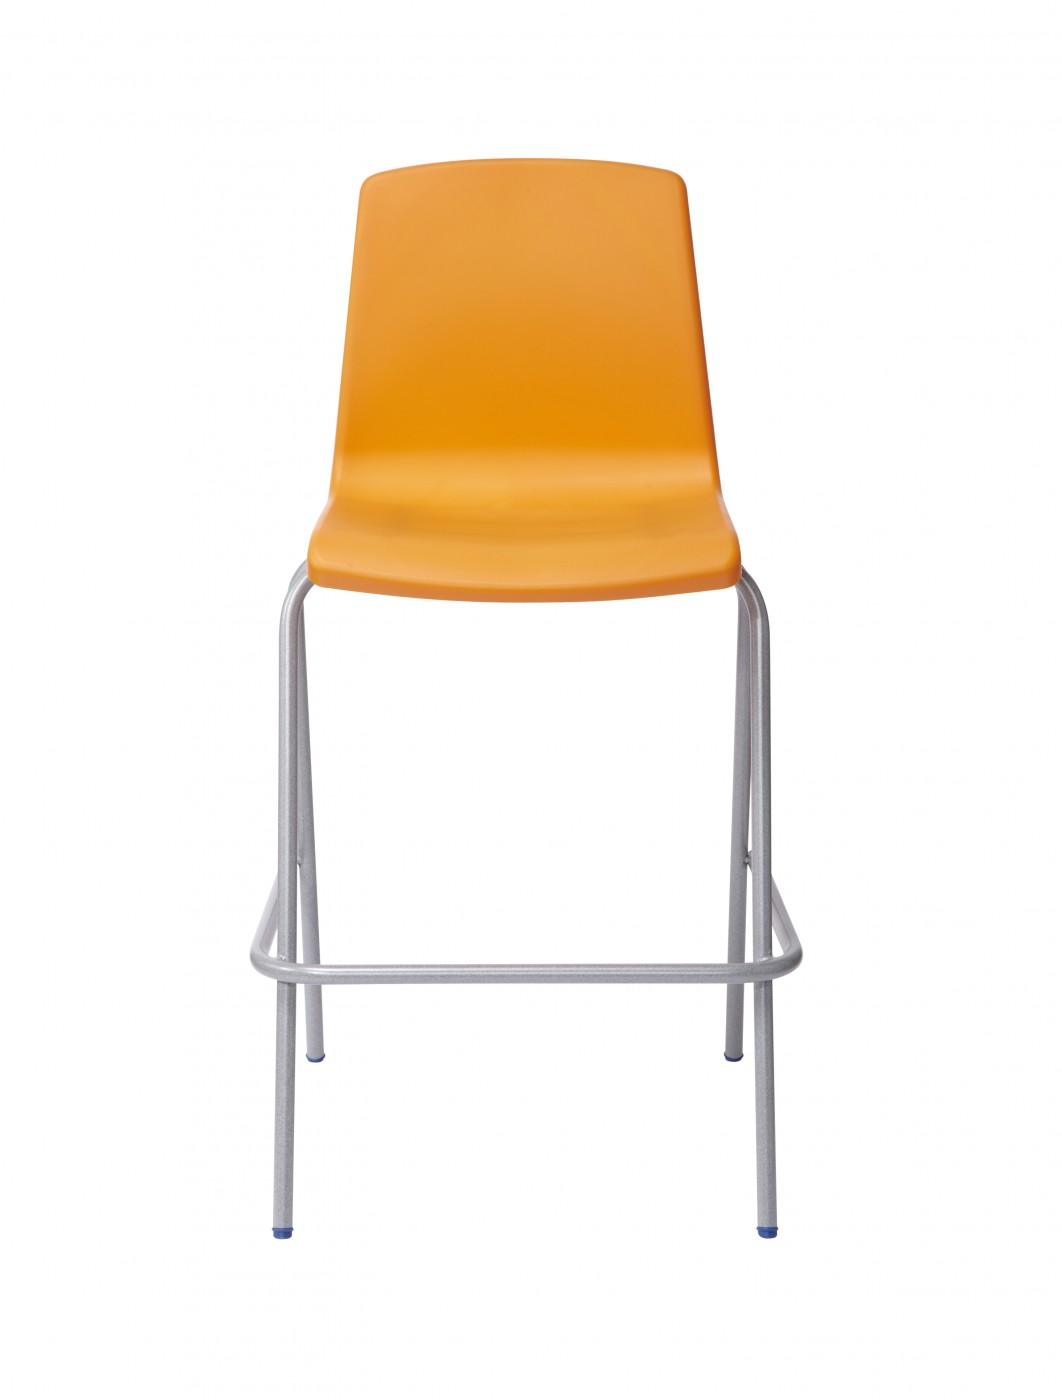 high chairs uk clear acrylic desk chair metalliform np classroom np5st4 121 office